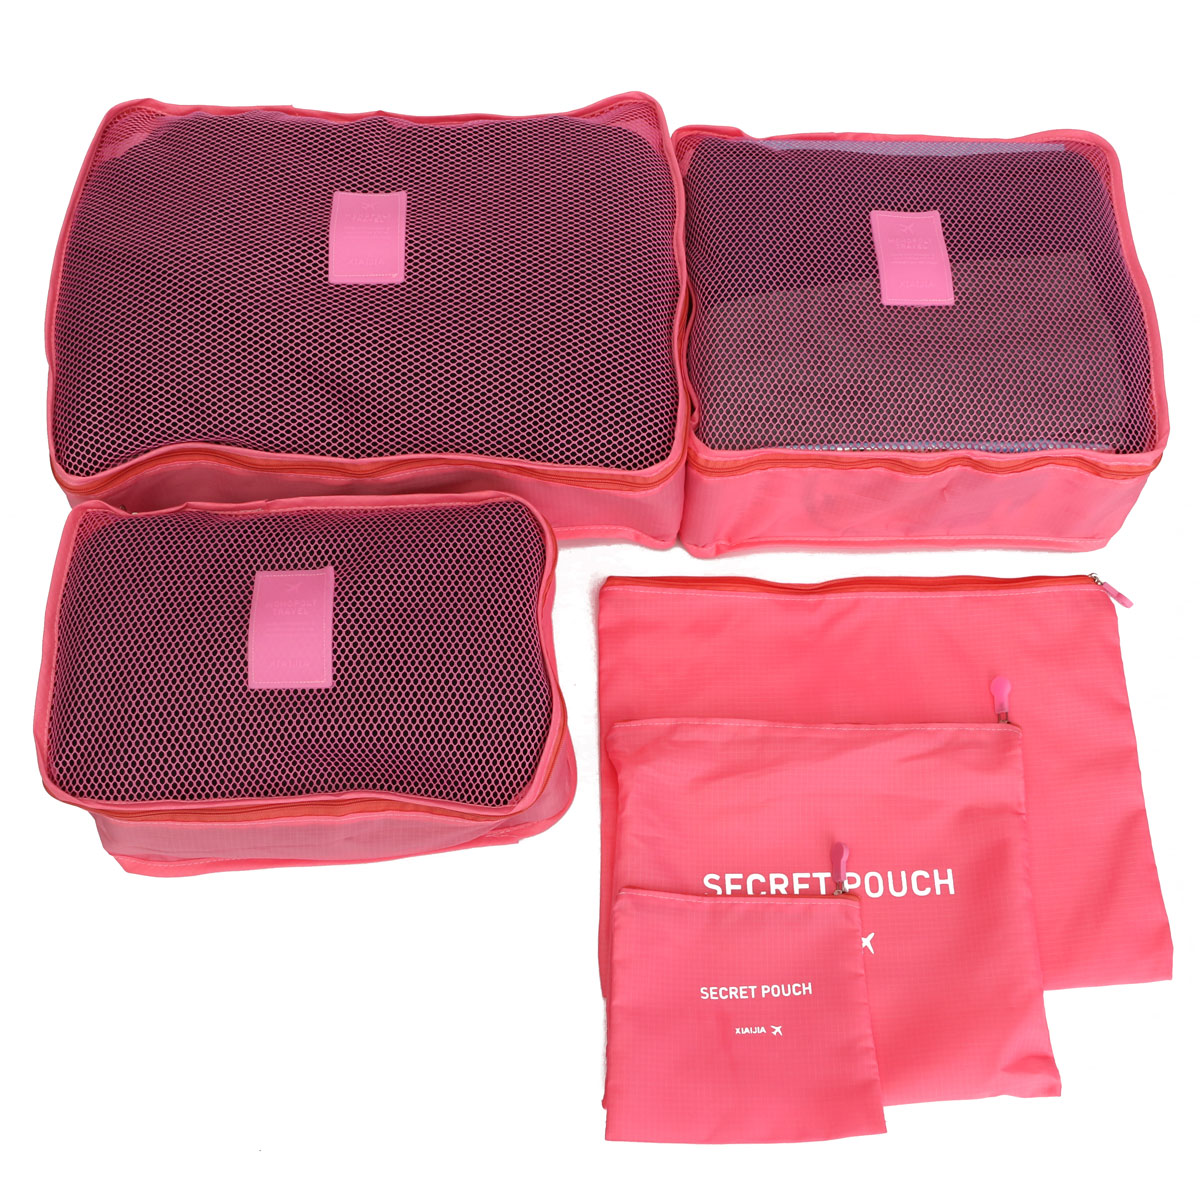 6Pcs-Waterproof-Clothes-Storage-Travel-Luggage-Organizer-Bags-  sc 1 st  eBay & 6Pcs Waterproof Clothes Storage Travel Luggage Organizer Bags ...